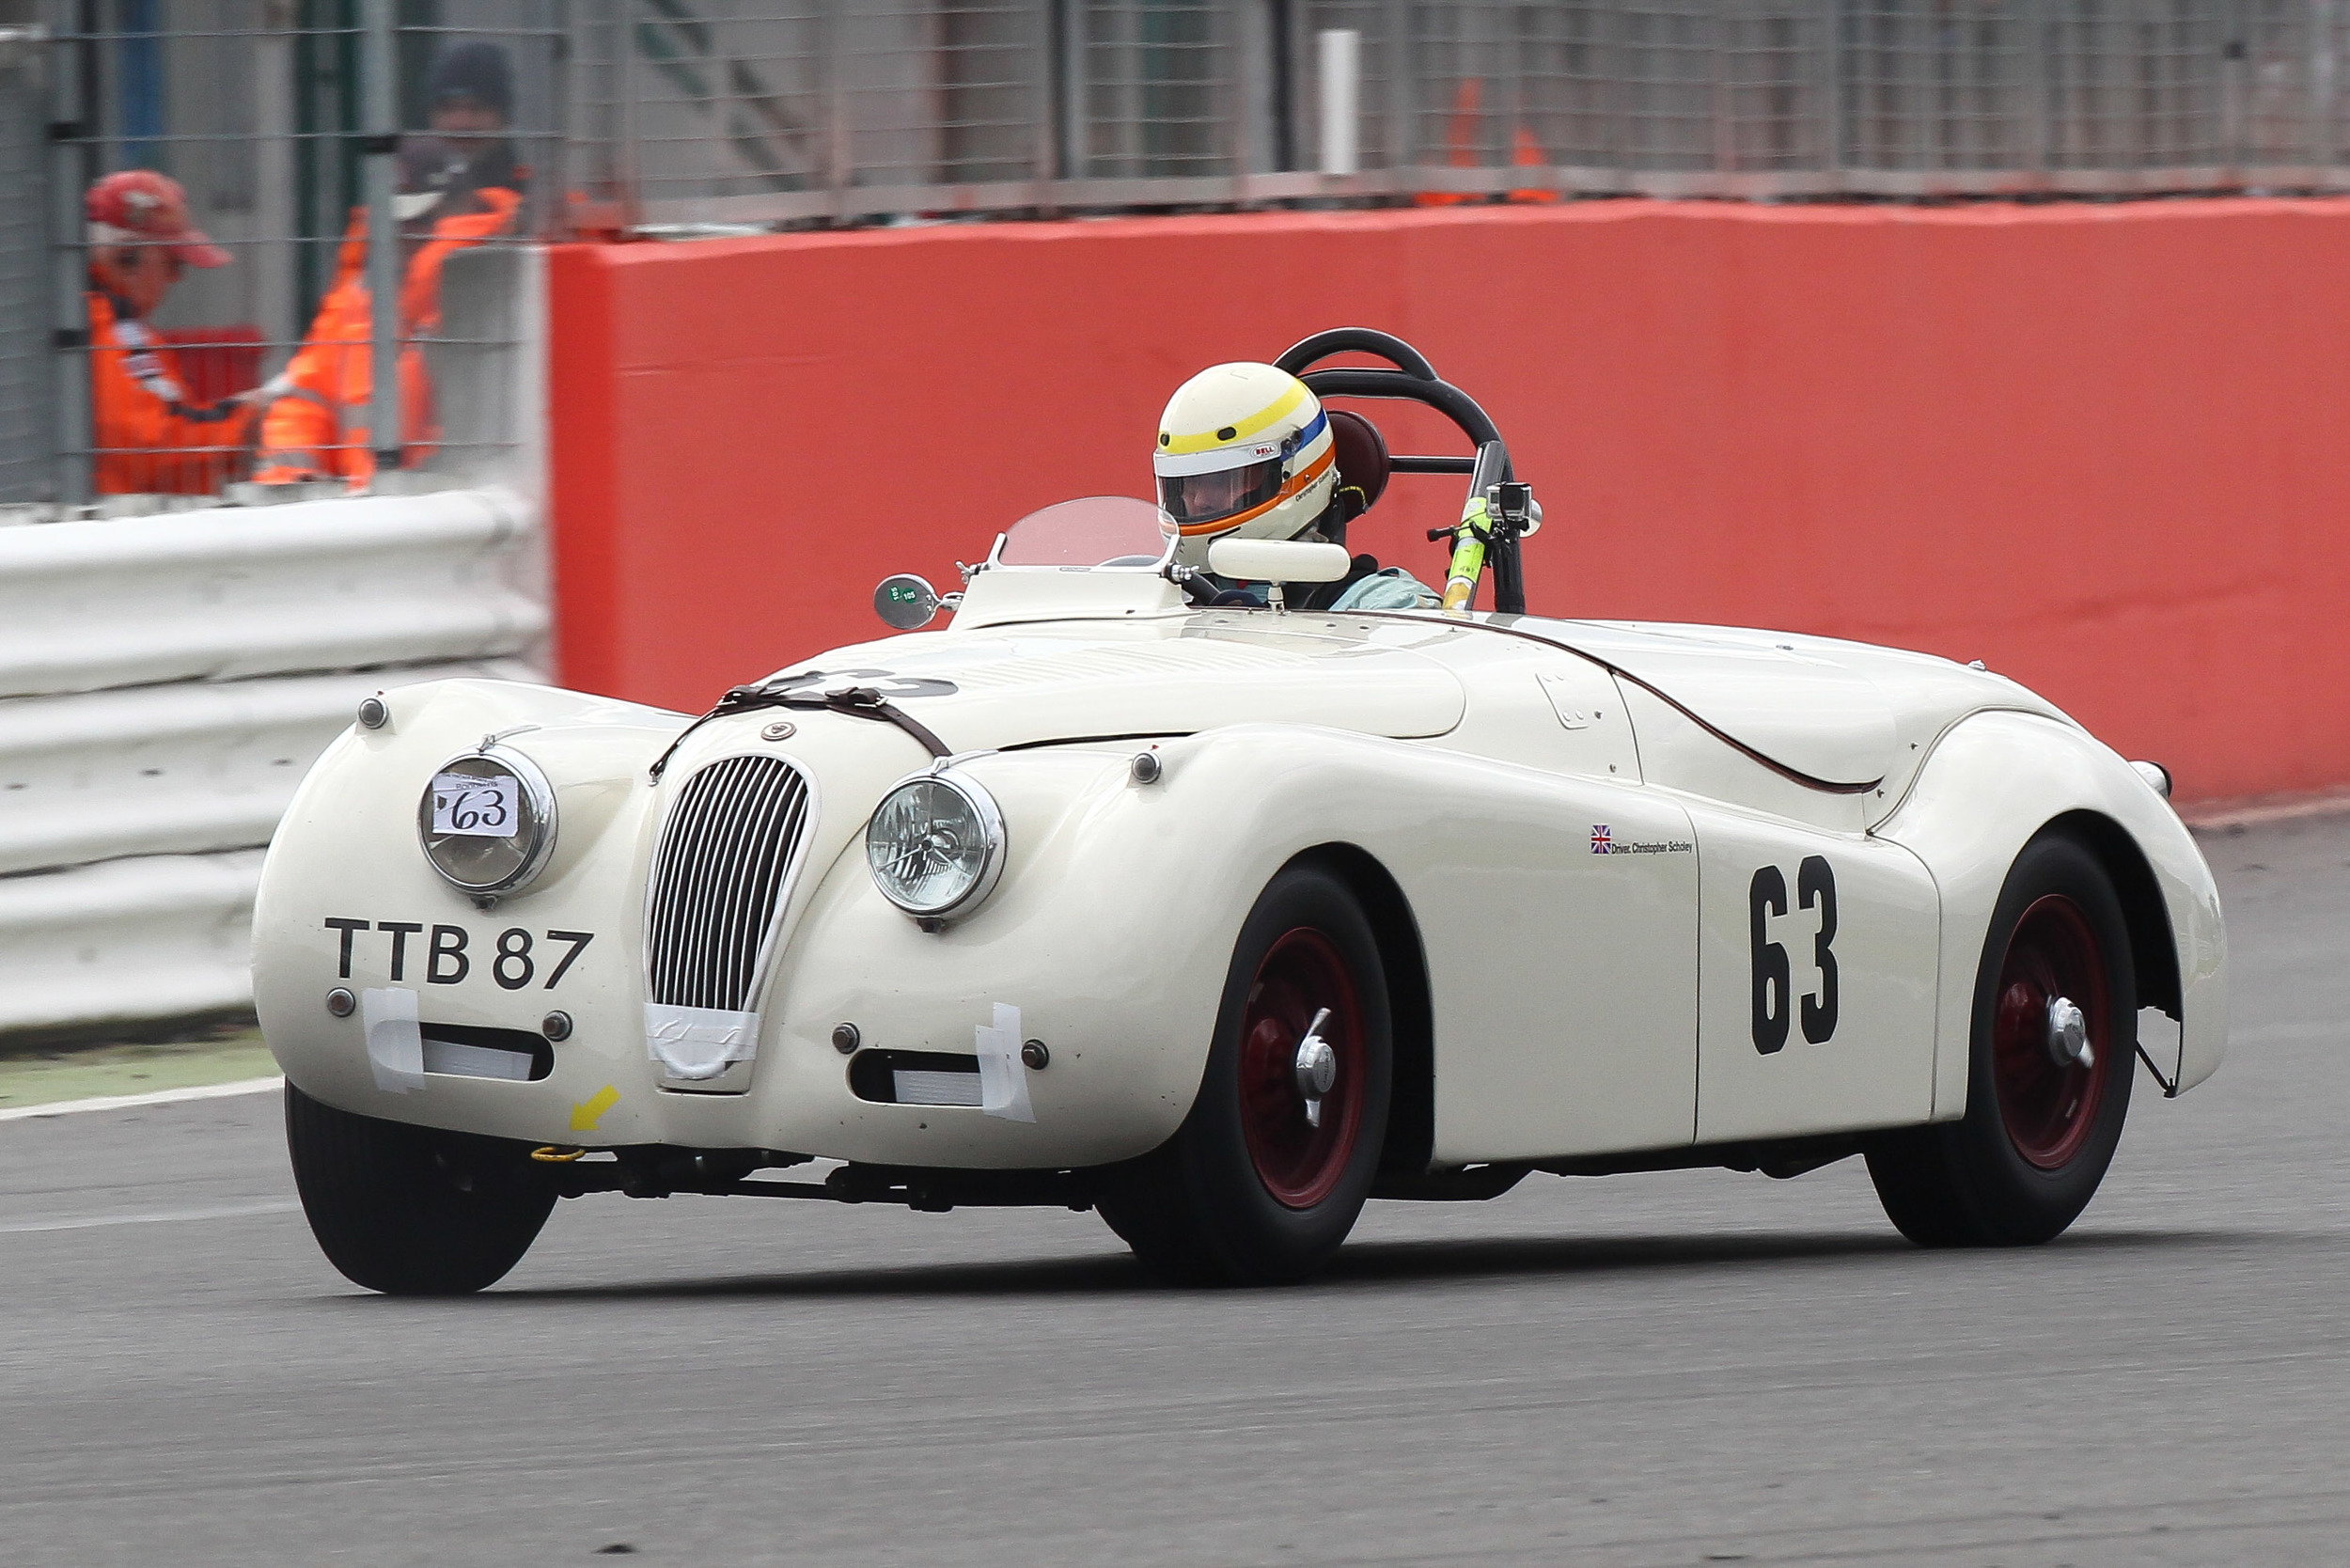 Chris Scholey in theJaguar XK 120 finished 9th                                                             Photo - Richard Styles